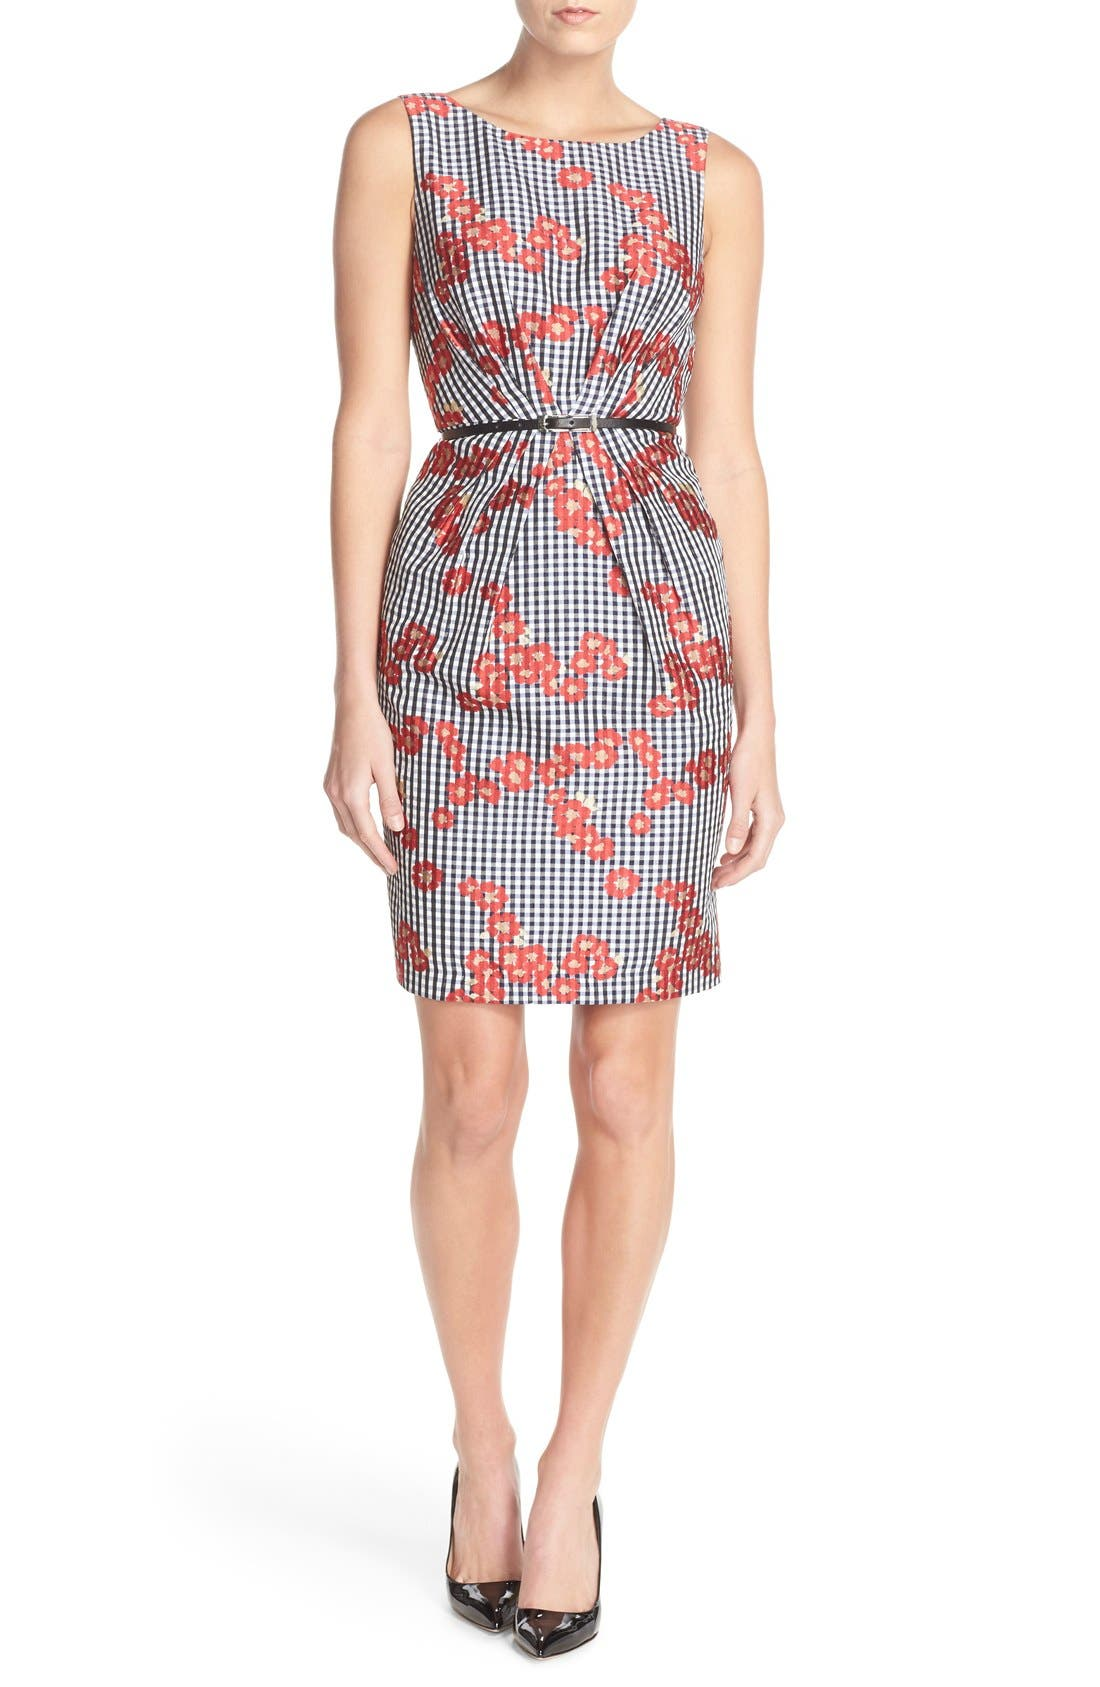 Alternate Image 1 Selected - Adrianna Papell Floral & Gingham Jacquard Sheath Dress (Regular & Petite)